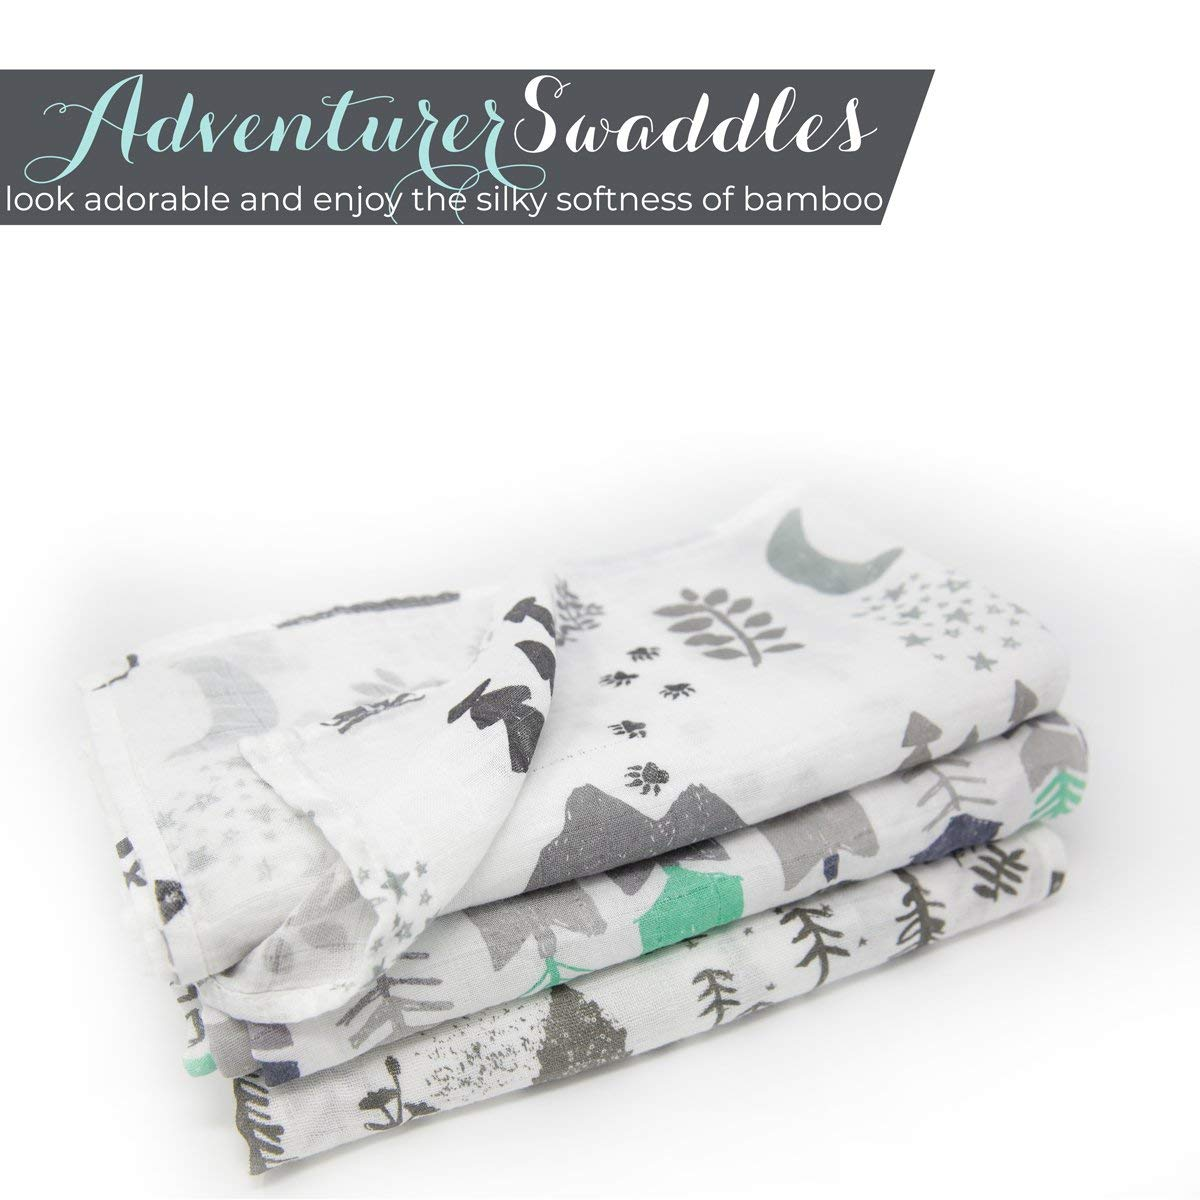 Muslin Swaddle Blanket Set 'Adventurer' Large 47x47 inch | Super Soft Bamboo Blankets | Arrow, Feather and Stars | 3 Pack Baby Shower Gift Bundle of Swaddles for Boys and Girls | 10,000 Wash Warranty by Kids N' Such (Image #9)